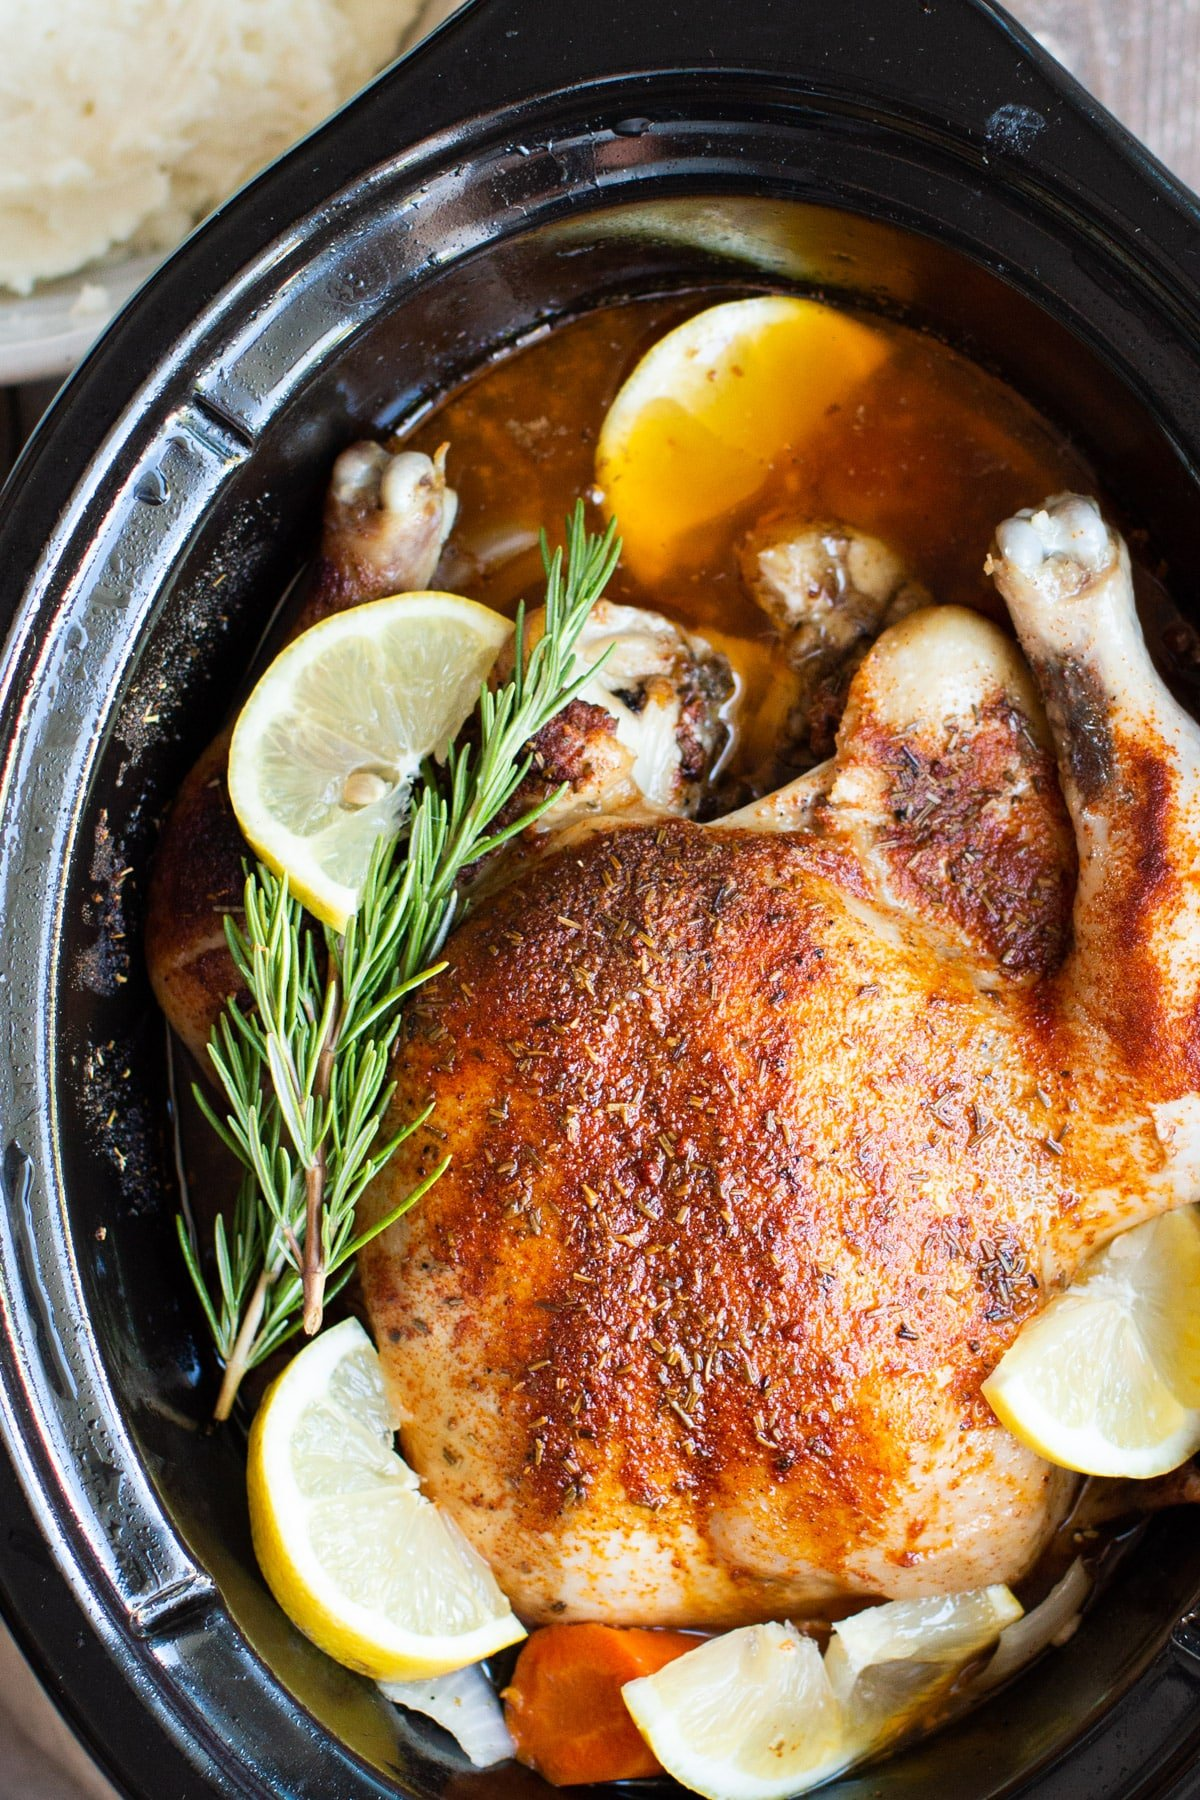 close up of a cooked whole chicken with lemon and rosemary in a slow cooker